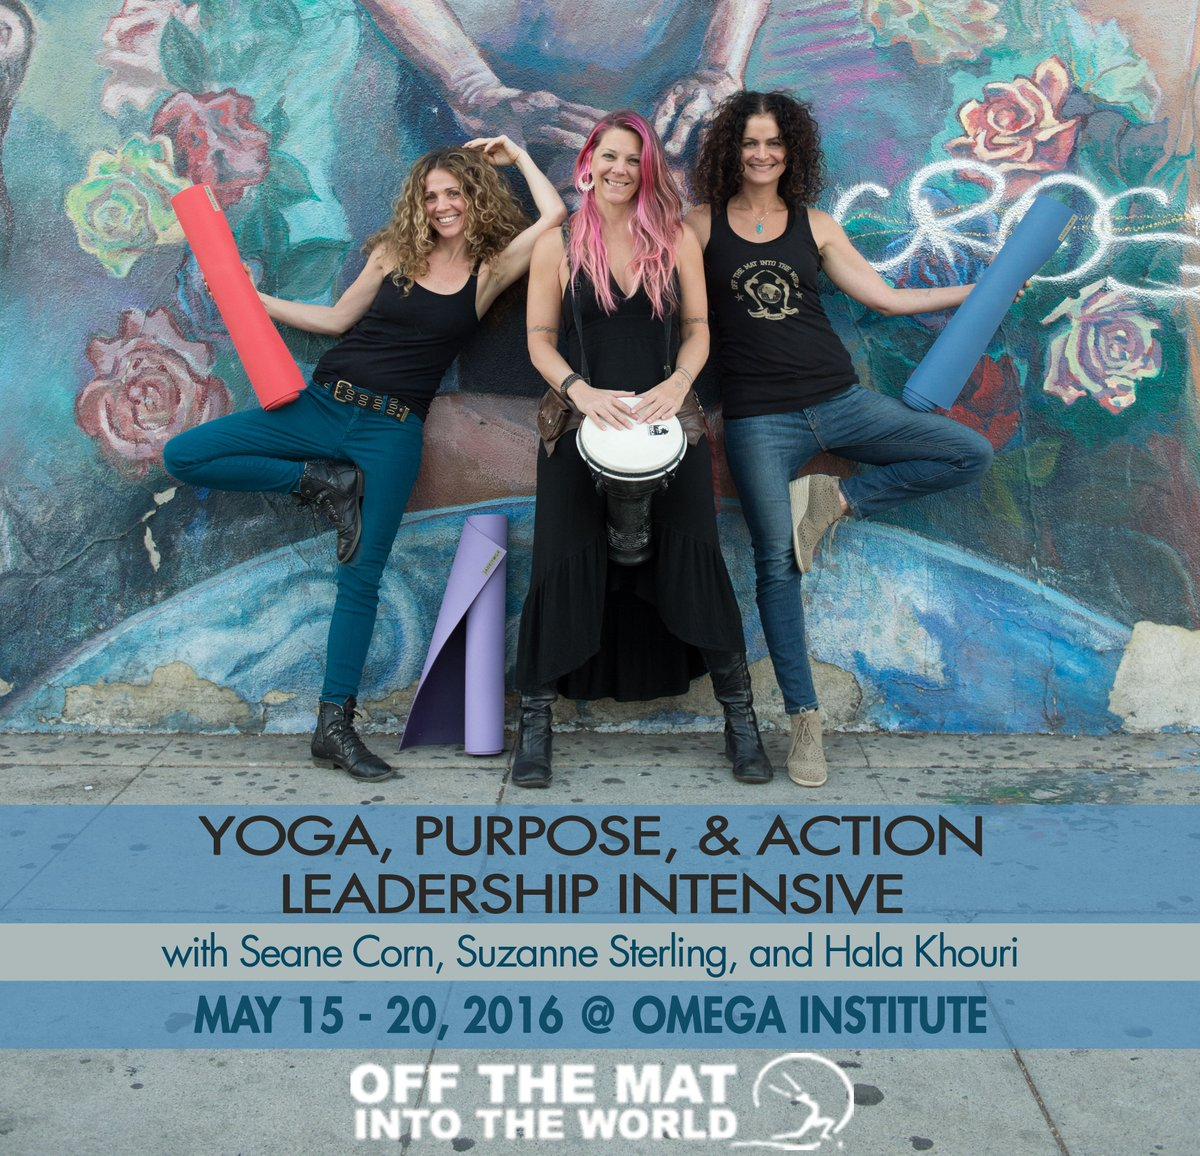 We're coming to @omega_institute! Are you? May 15-20 https://t.co/OrzMcb3GCj  #yoga #purpose #action https://t.co/dyBzFCmIMB